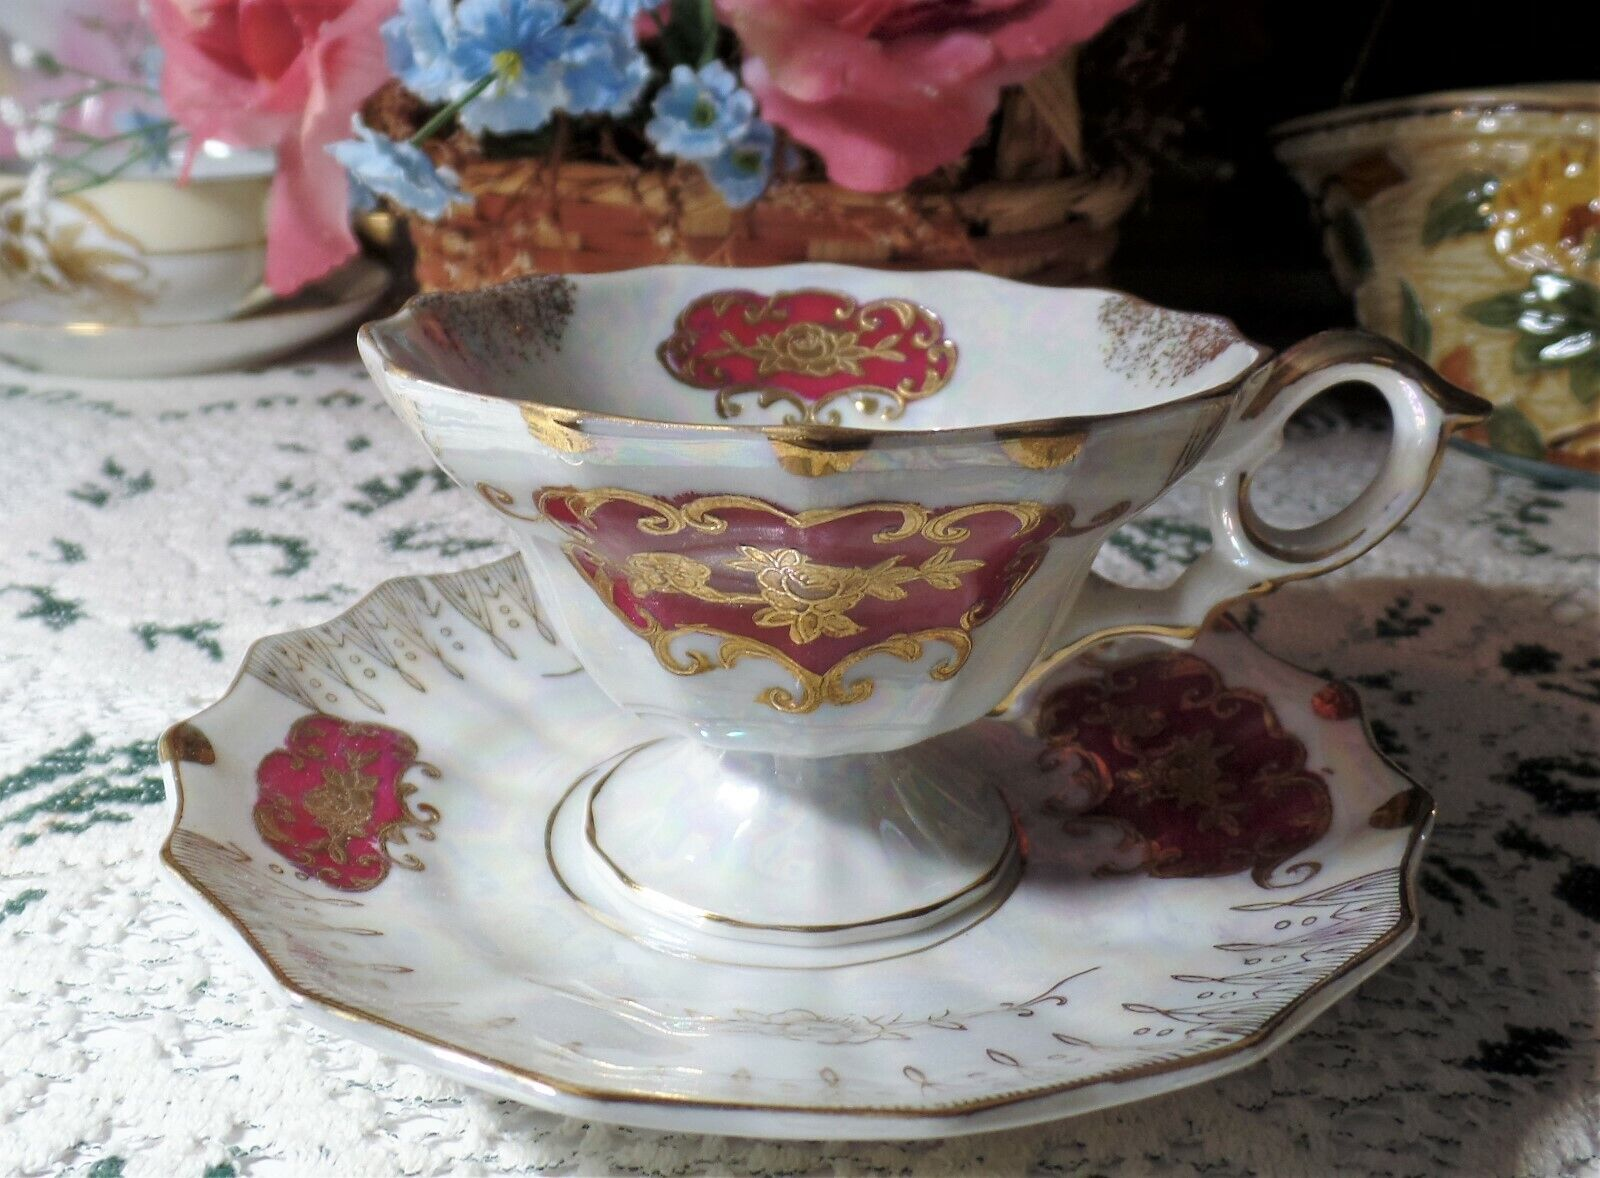 Vintage Japan China IRIDESCENT/LUSTERWARE Footed Cup Saucer  - $7.95